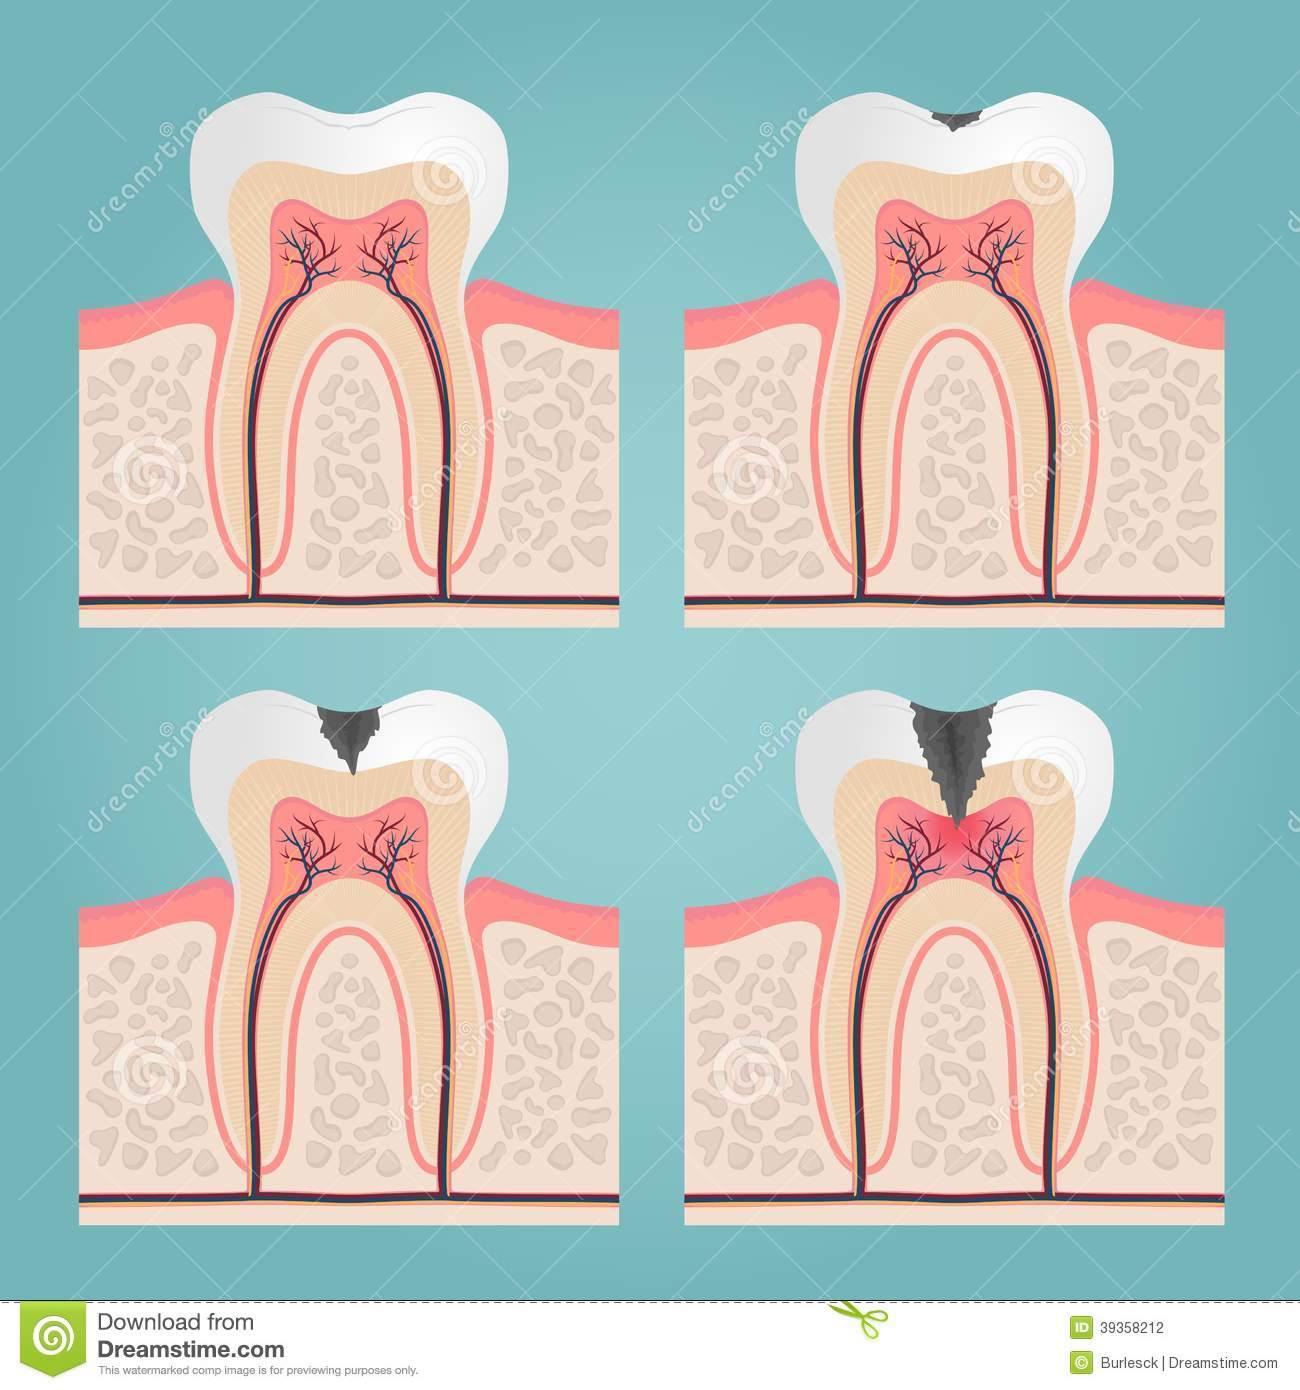 Tooth anatomy stock vector. Illustration of caries, blood - 39358212